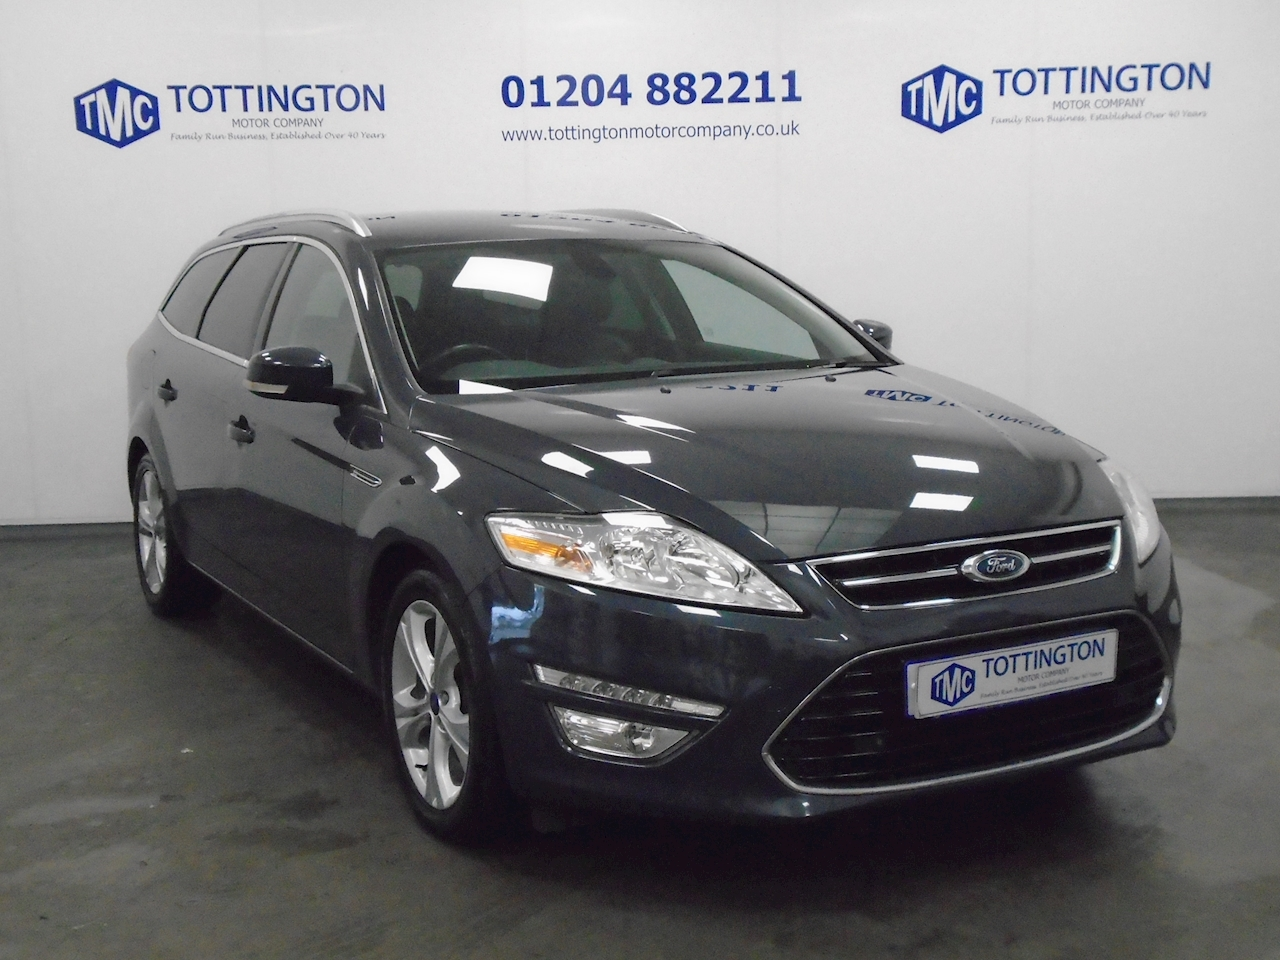 Ford Mondeo Titanium X Hatchback 2.0 Manual Diesel